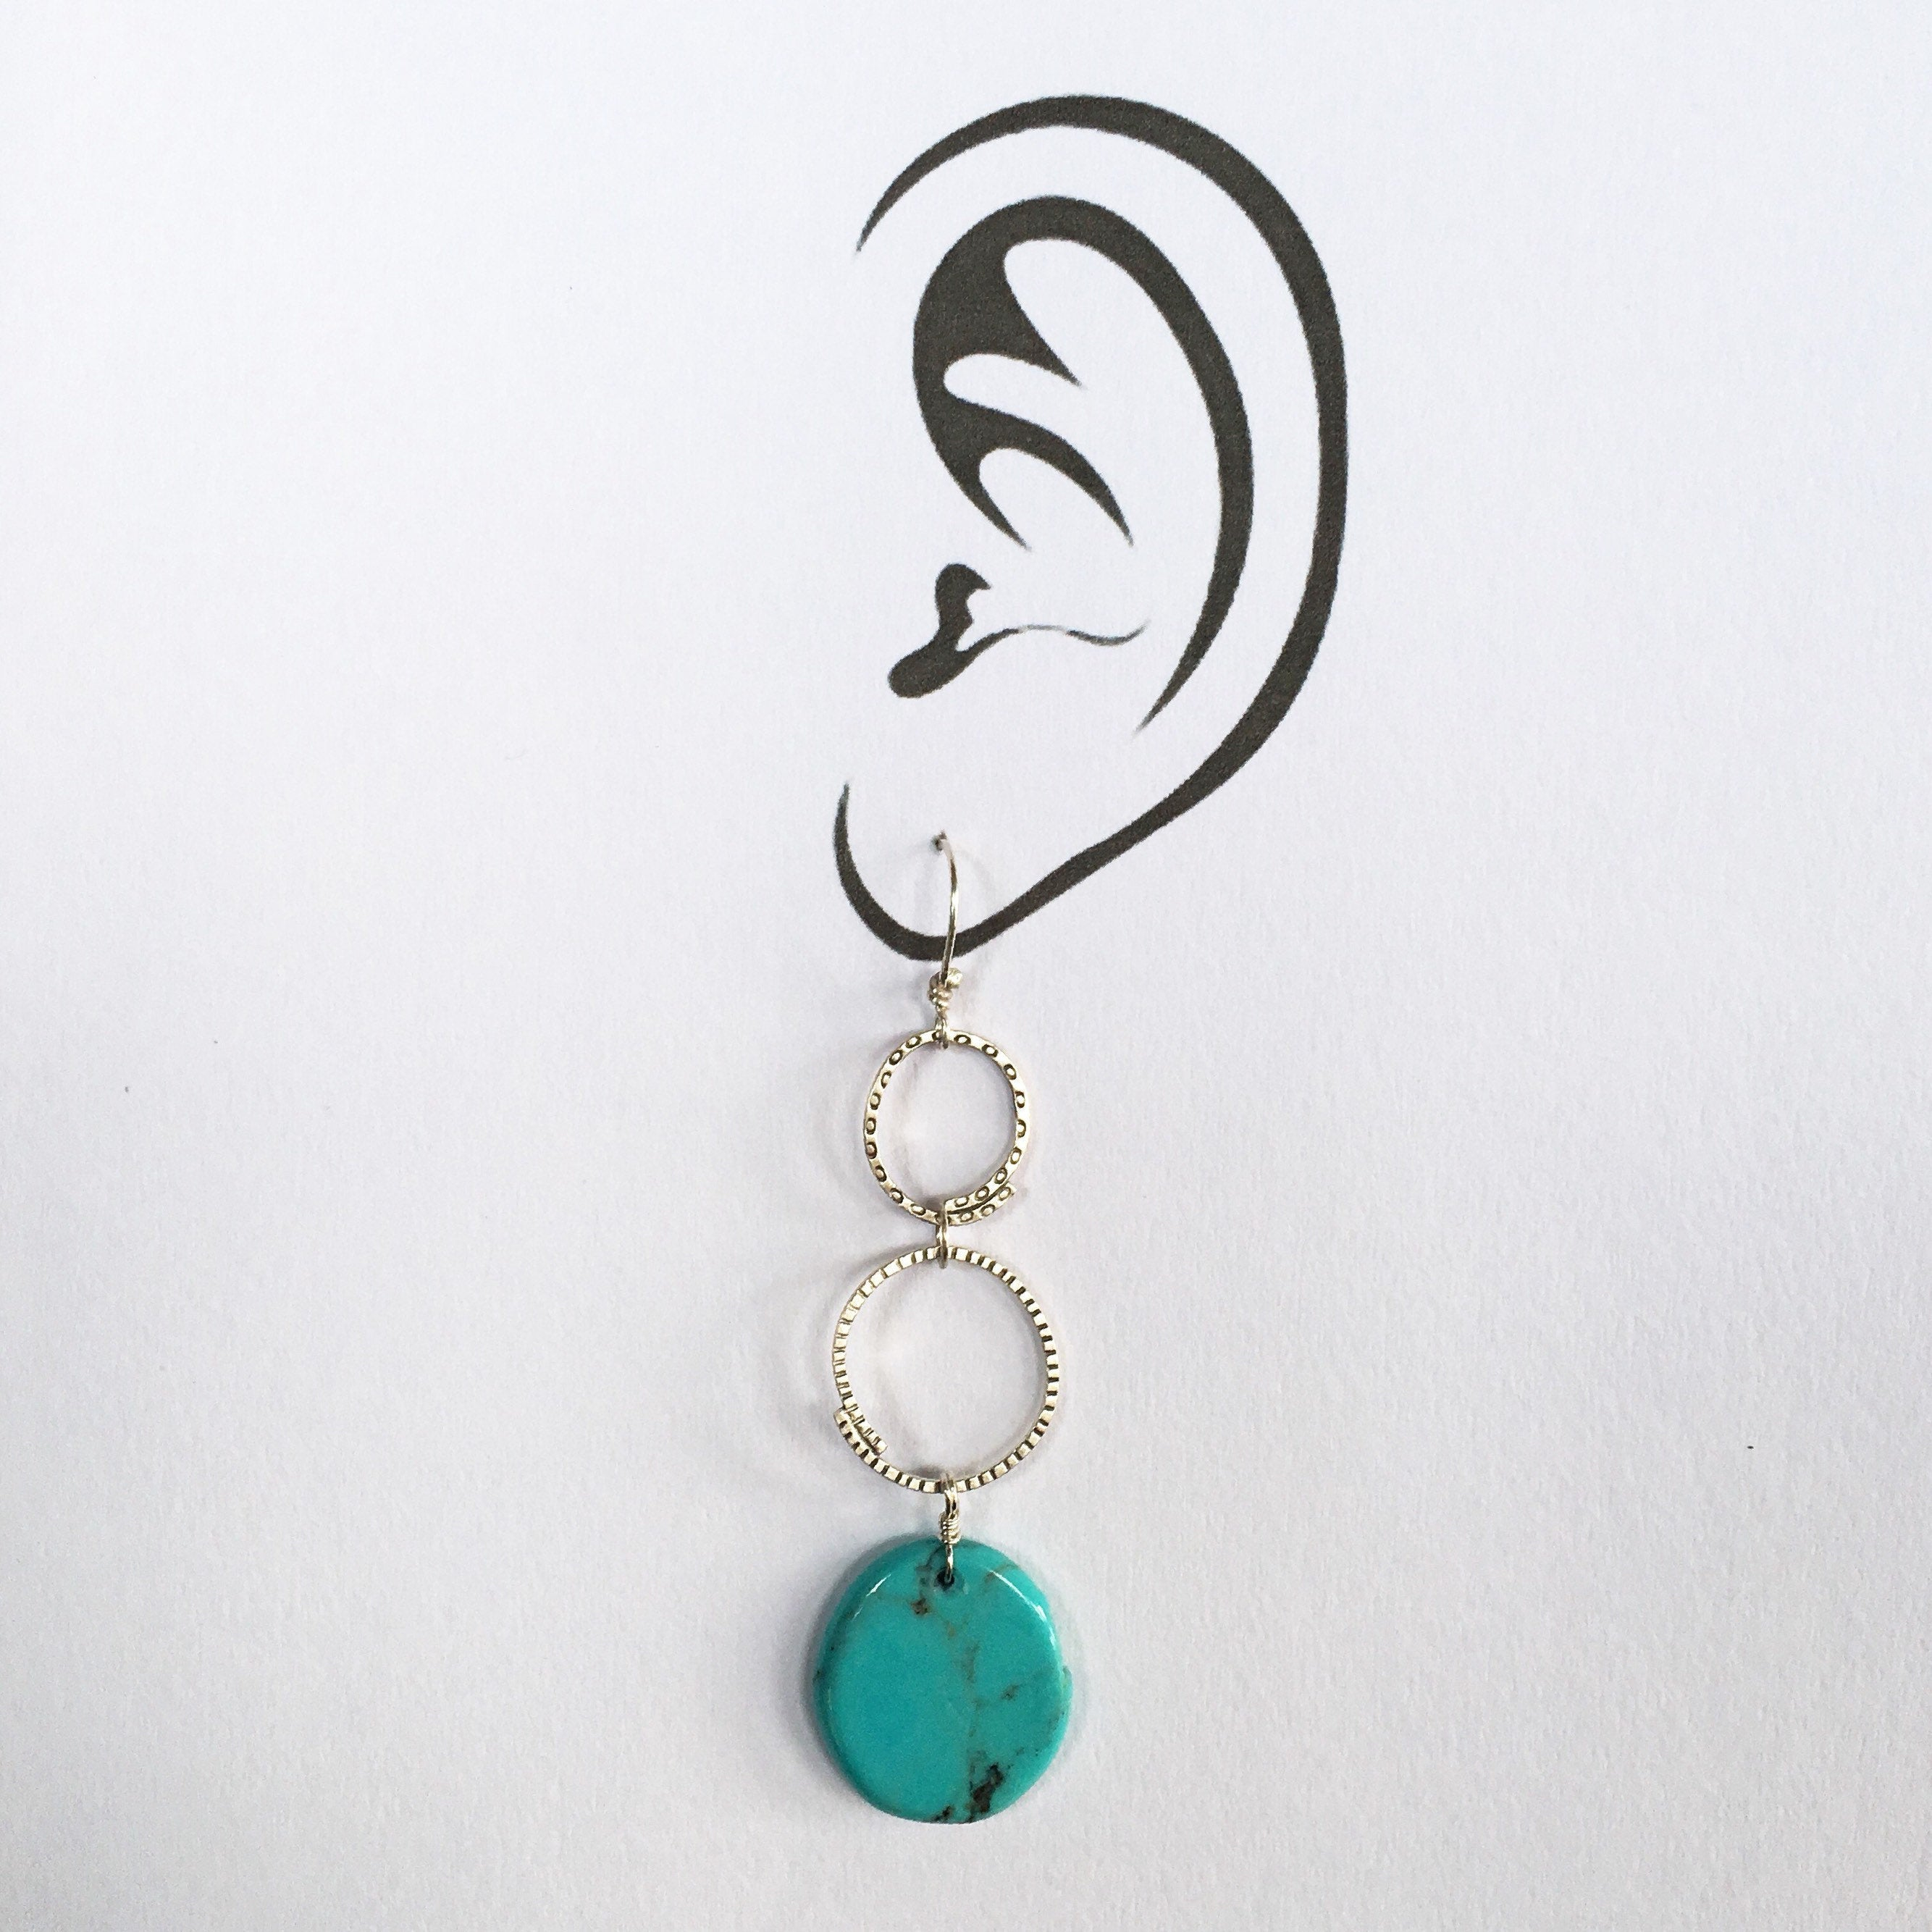 Turquoise Stamped Earrings